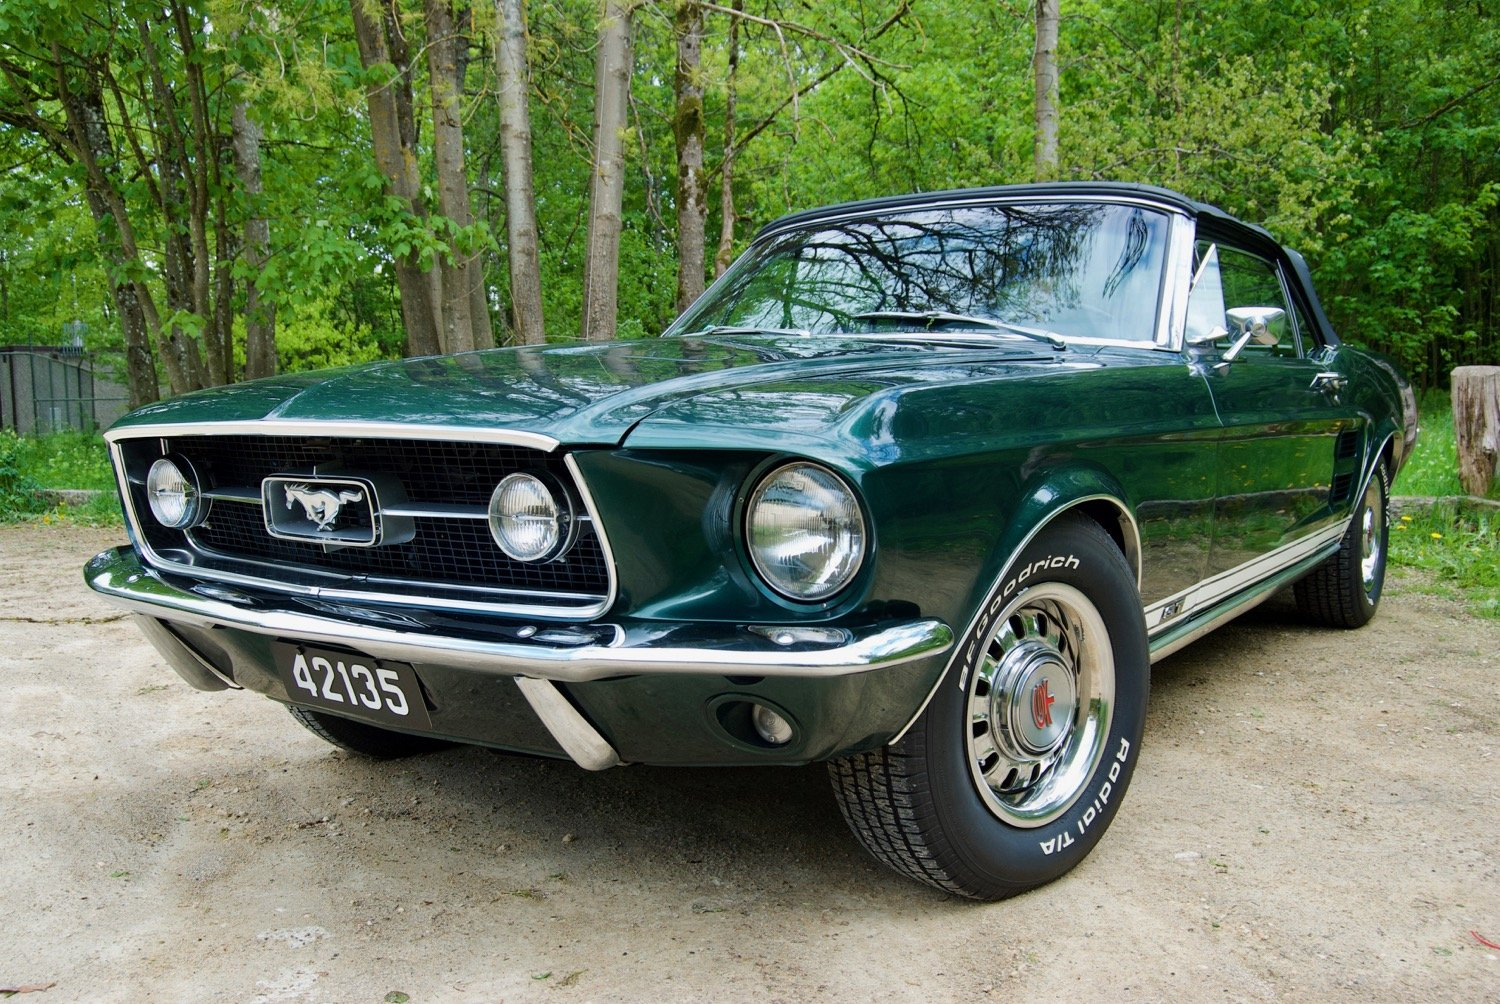 Tilly - 1967 Ford Mustang Convertible V8 - front side woods